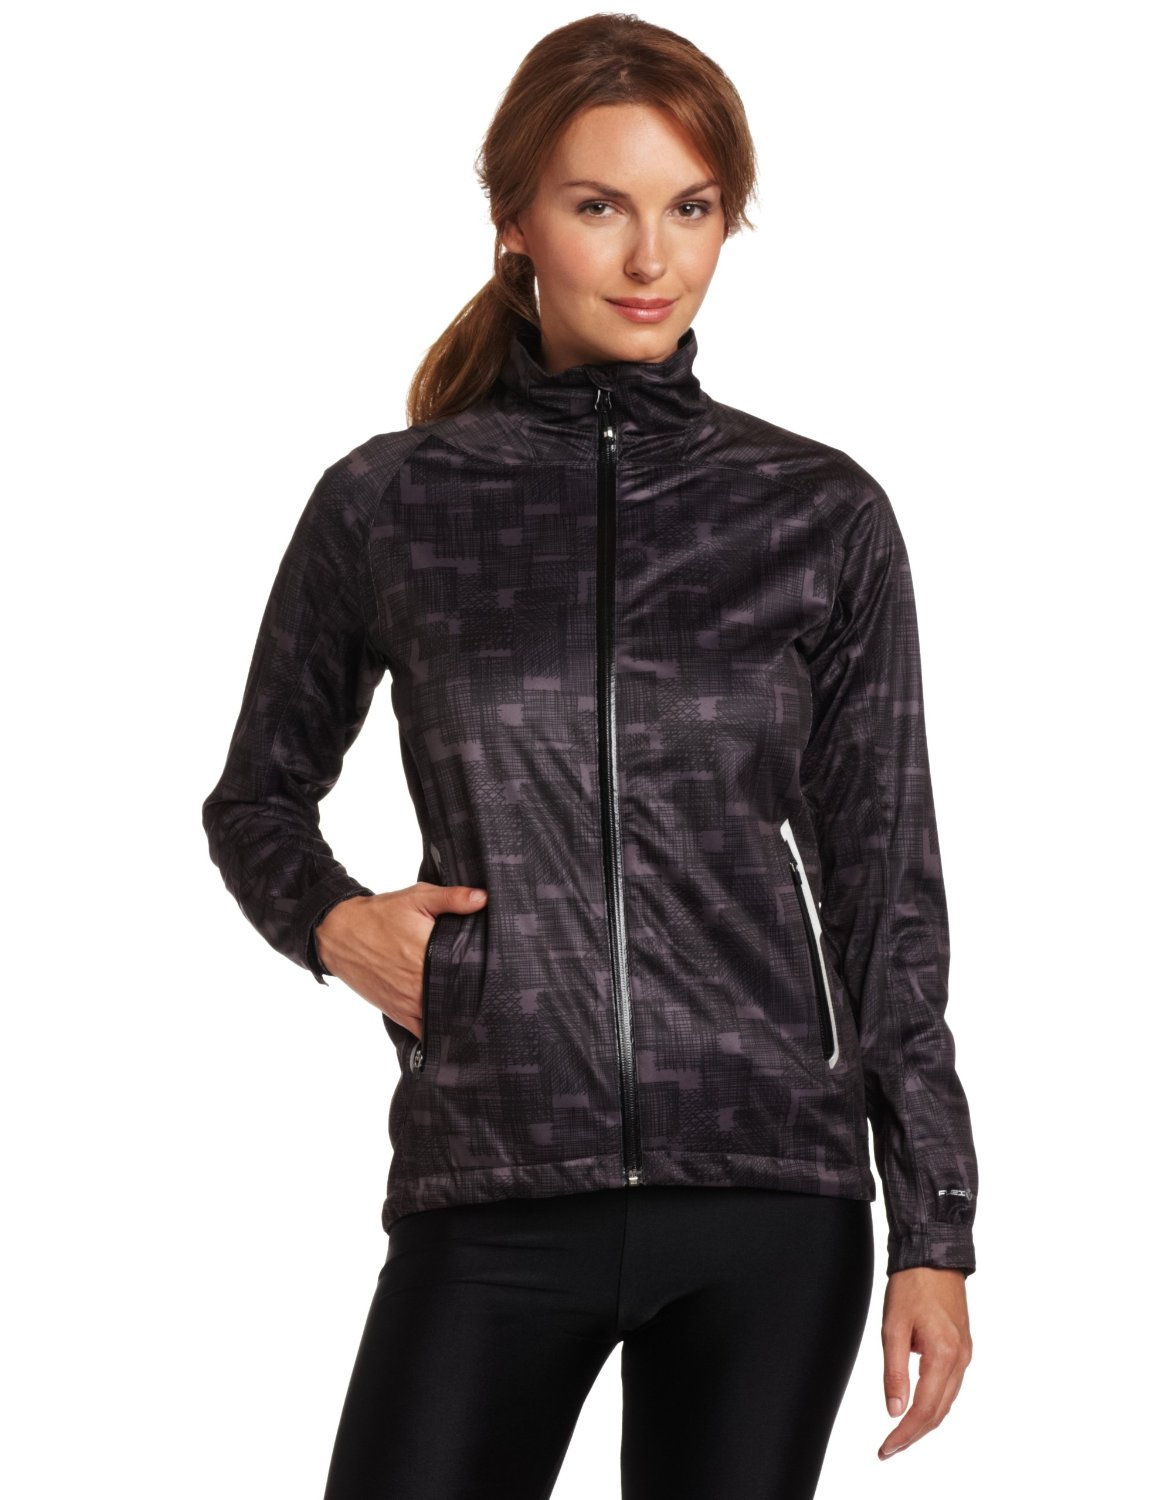 Sunice Womens Golf Jackets